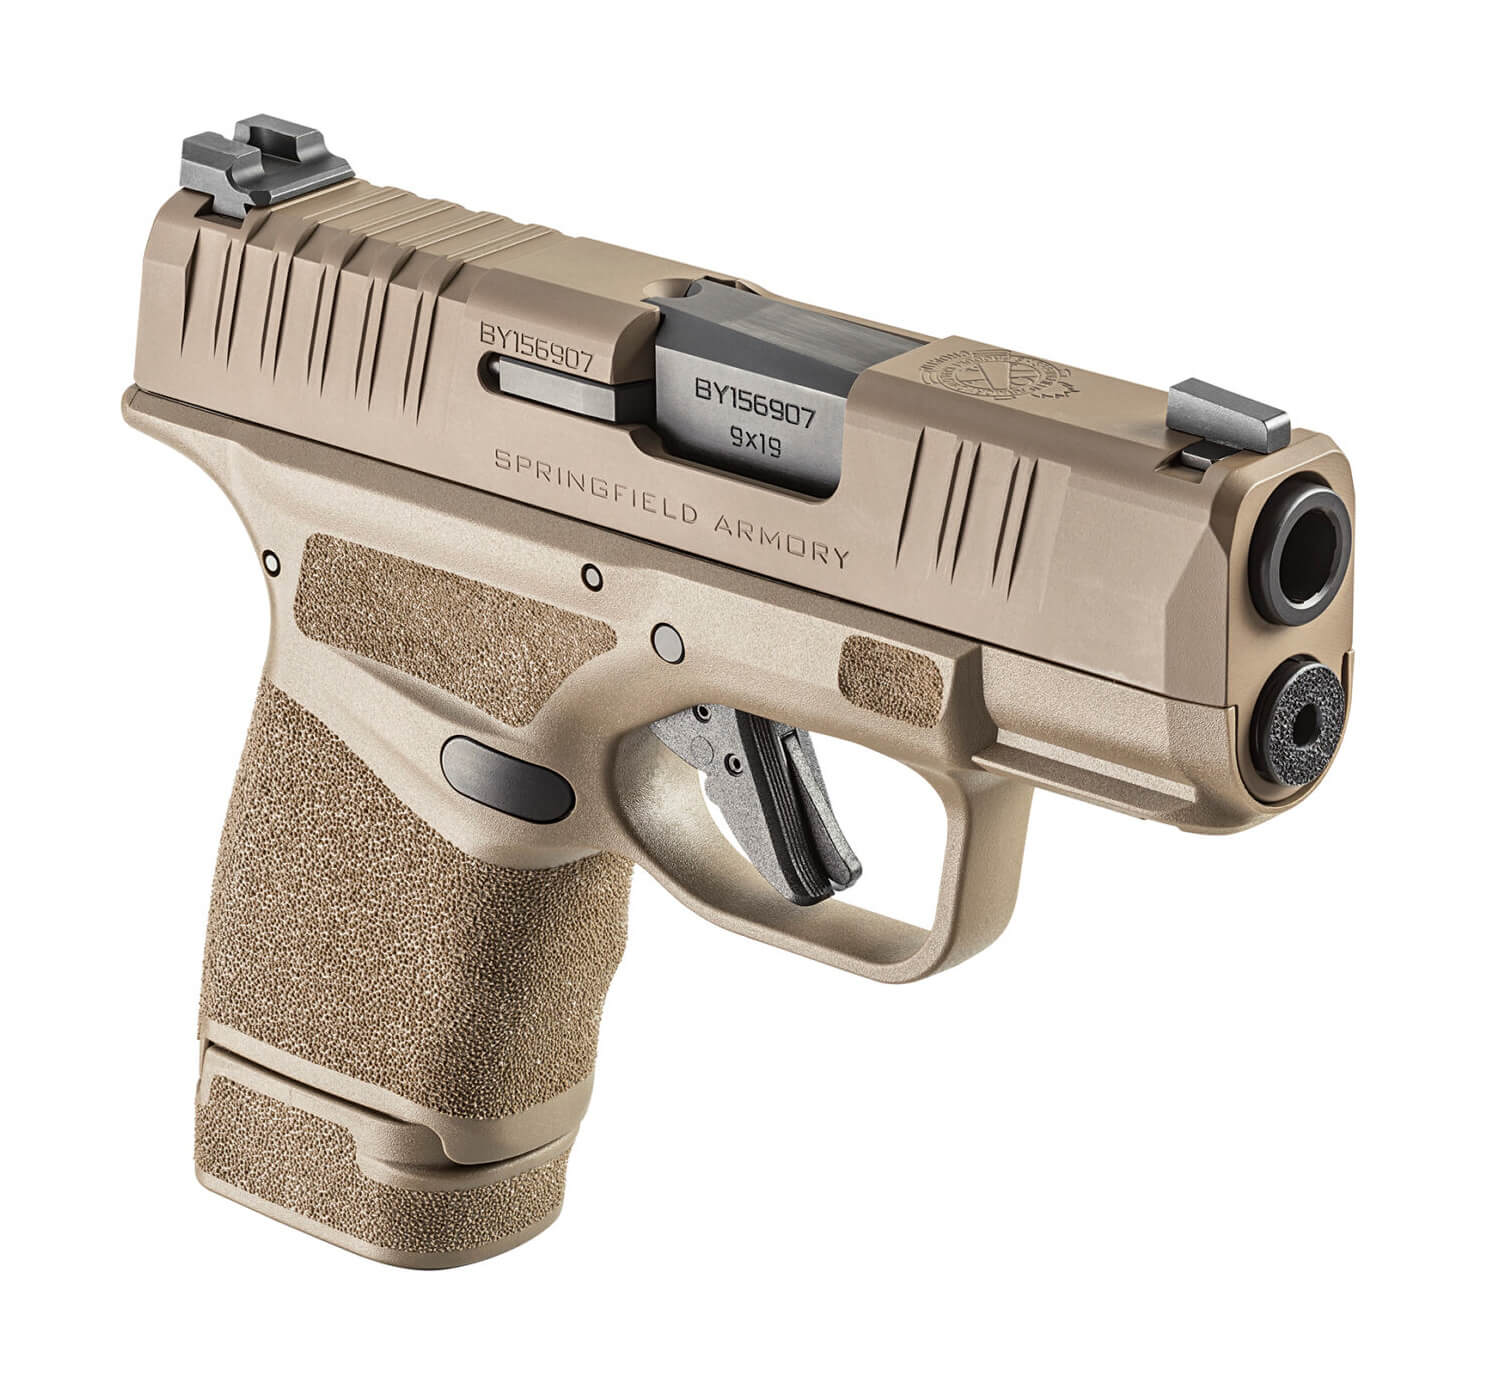 Standard Hellcat in the new FDE color